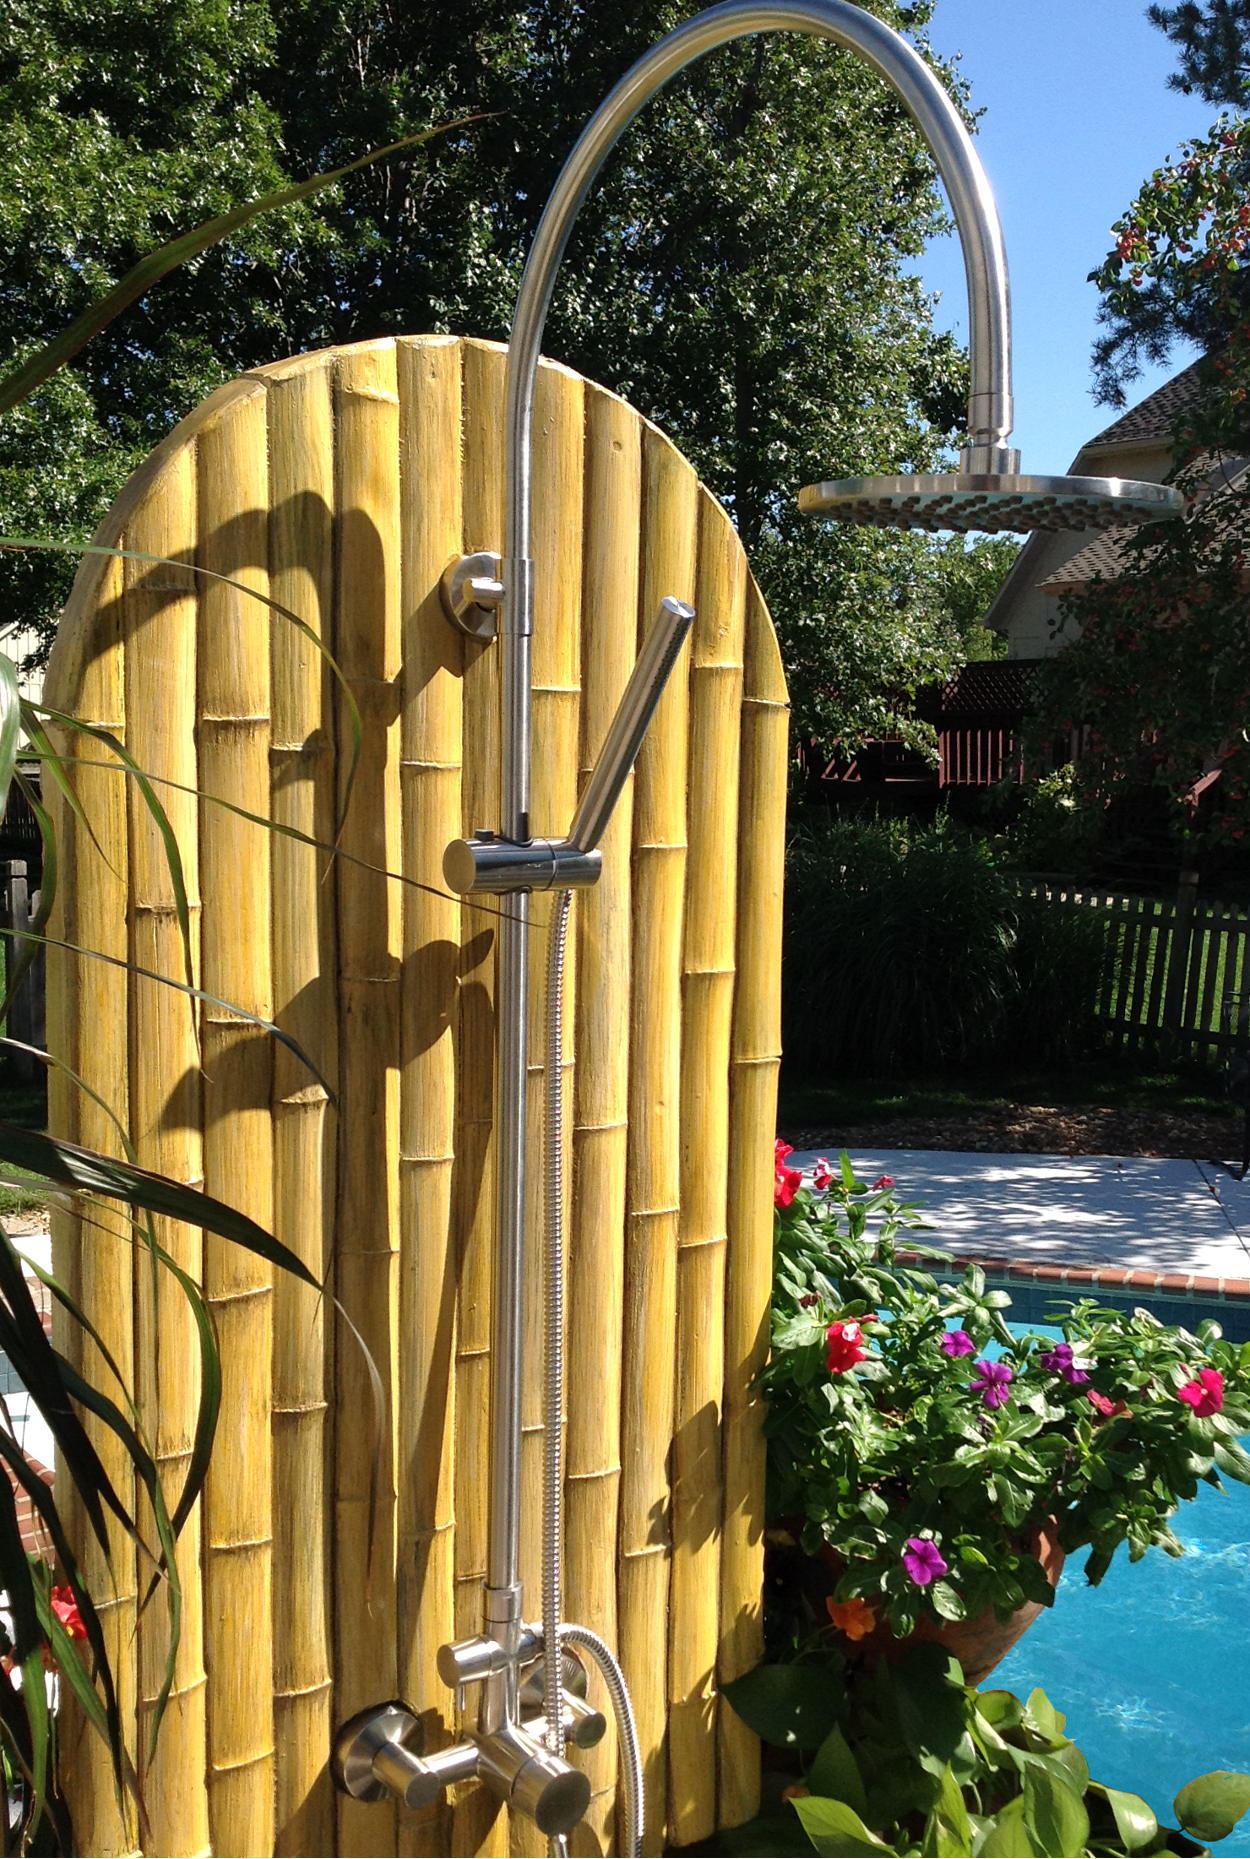 Image of SunRinse Bamboo Shower Panel with the SR201 Stainless Steel Outdoor Fixture.